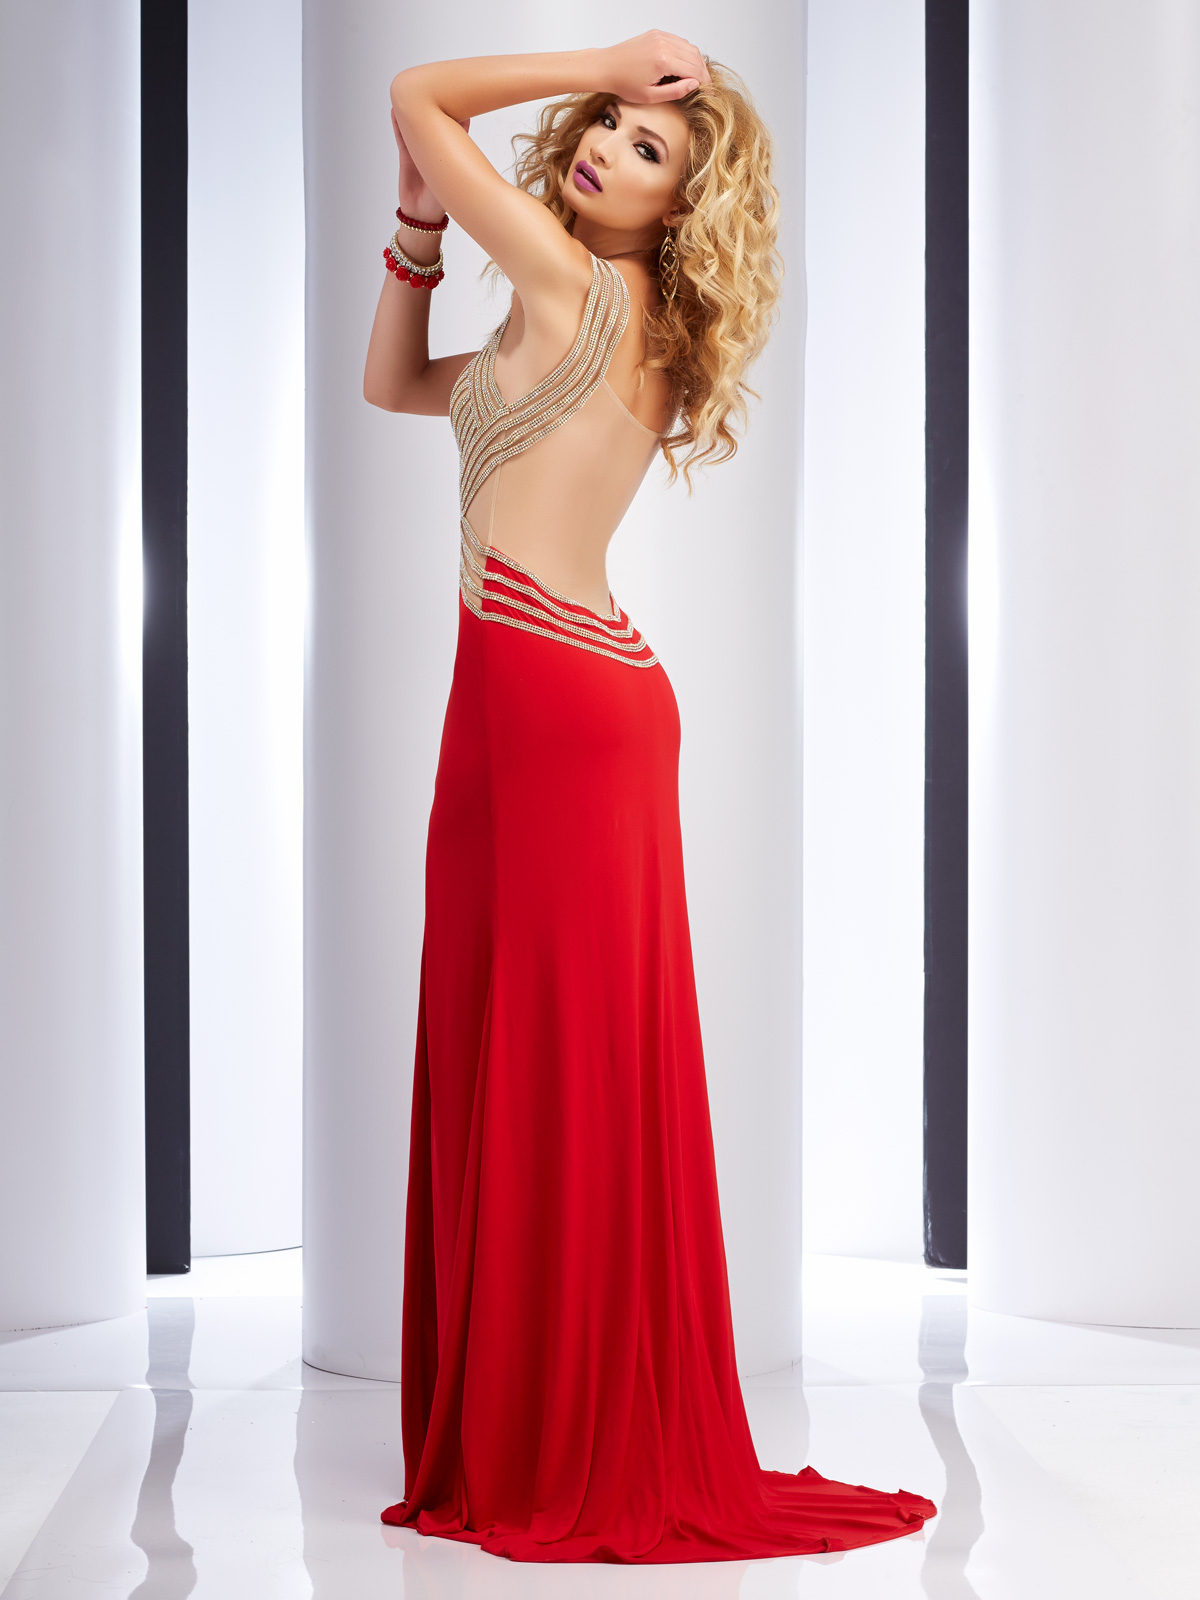 Clarisse 2742 Prom Dress Promgirl Net